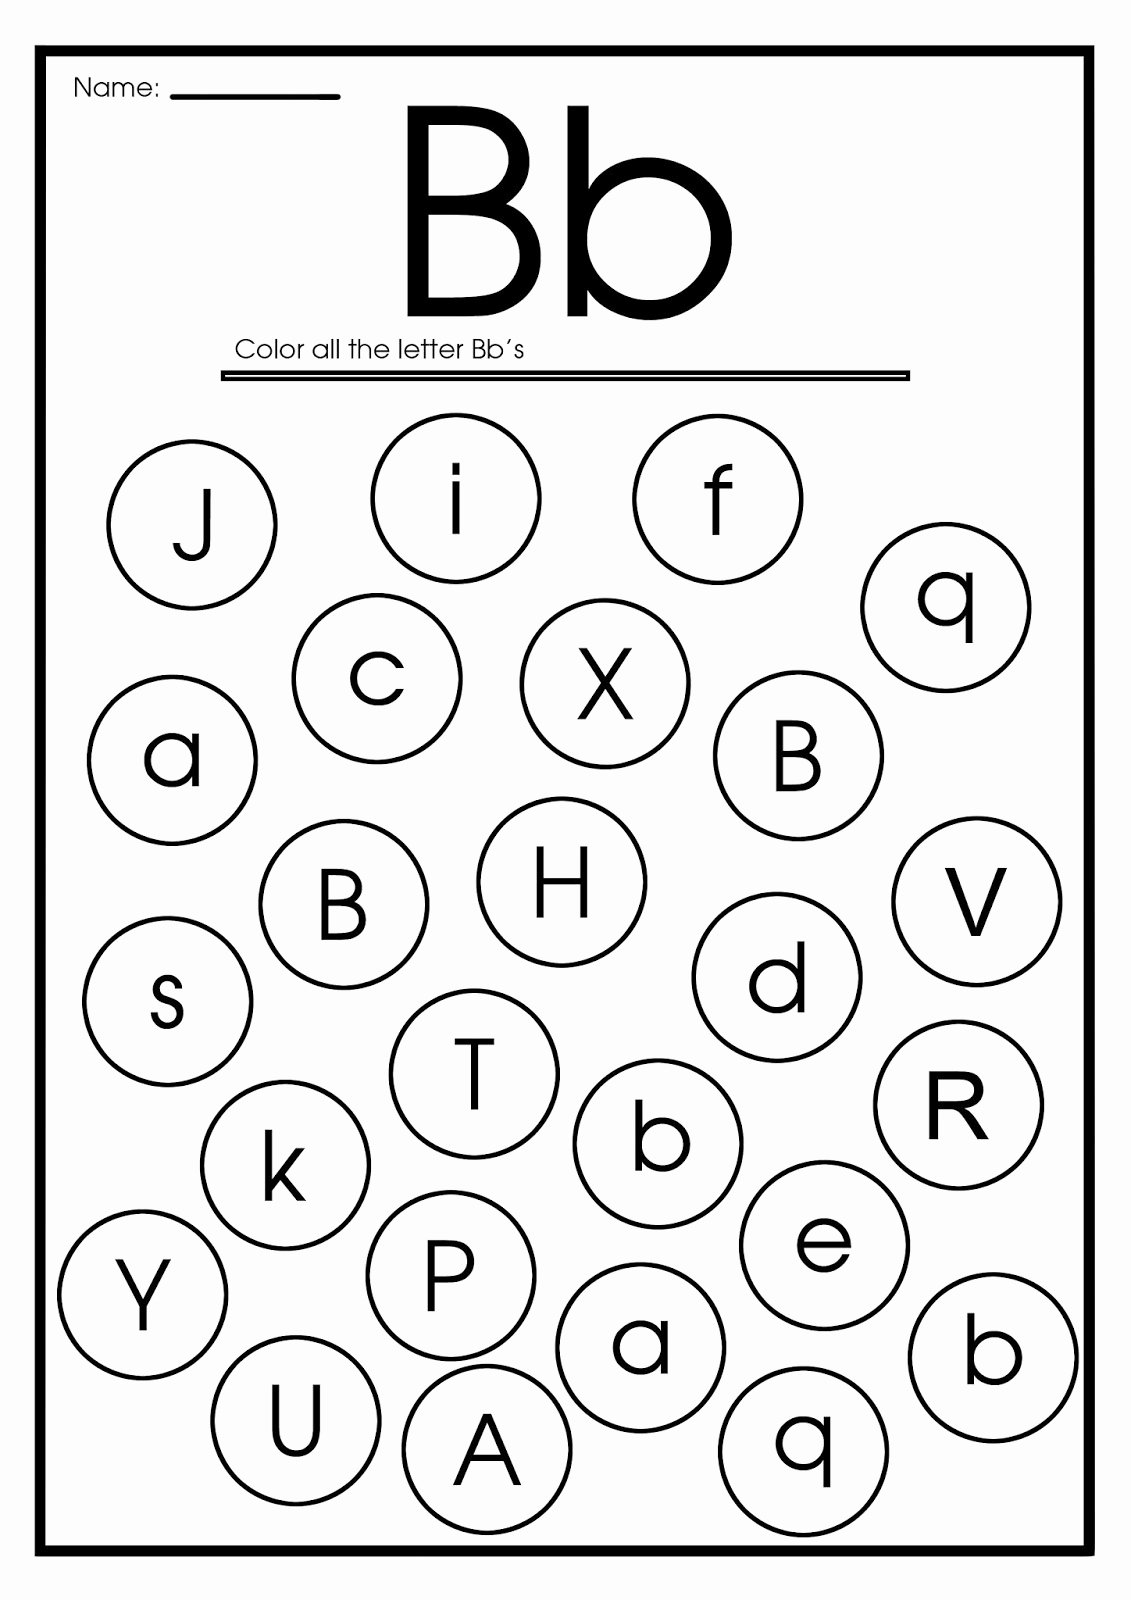 Letter B Worksheets for Preschoolers Unique Letter B Worksheets Flash Cards Coloring Pages